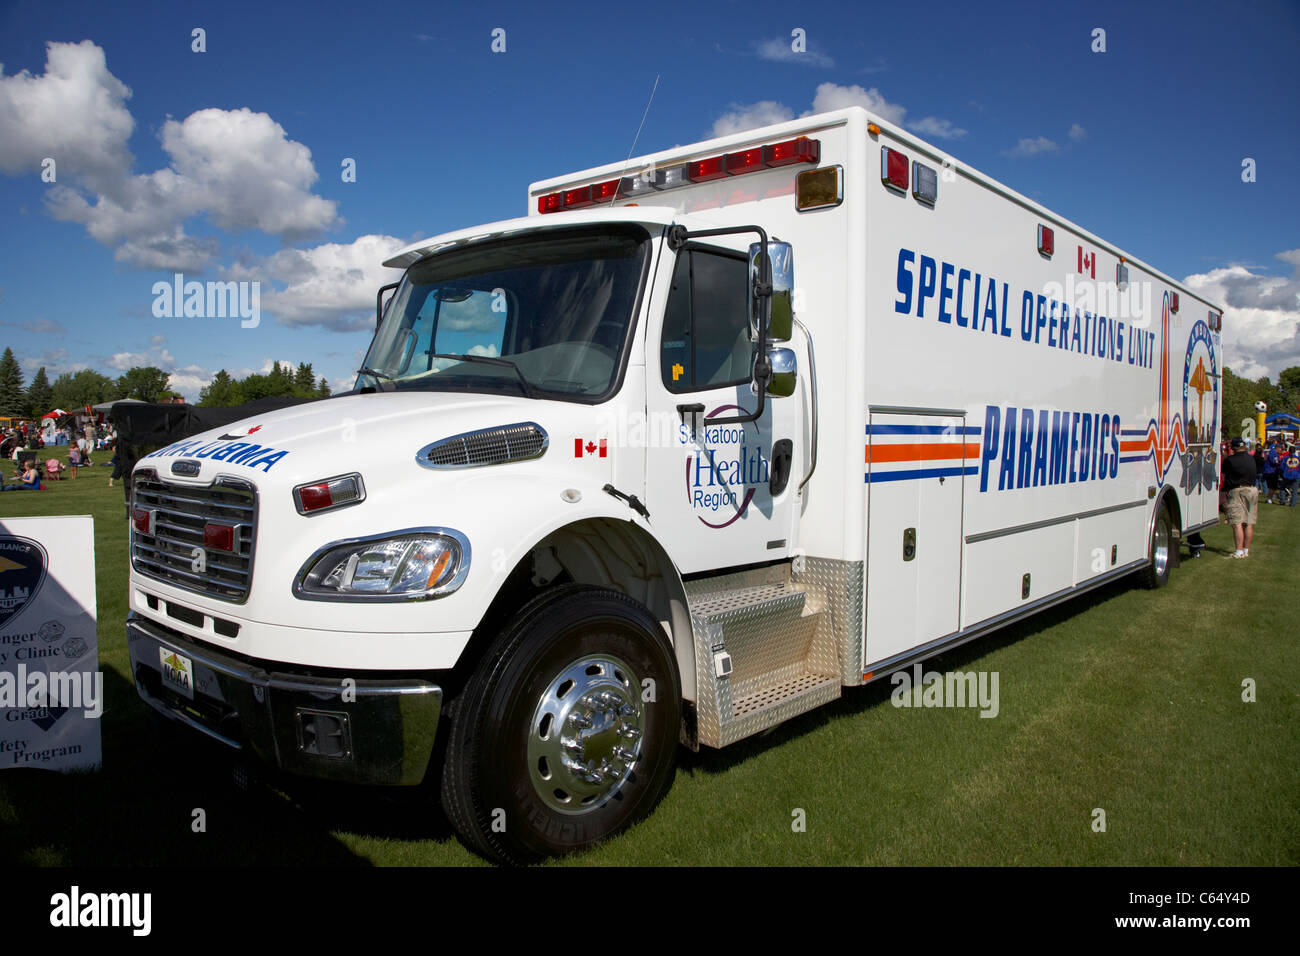 Saskatoon health region special operations unit paramedics Saskatchewan Canada - Stock Image